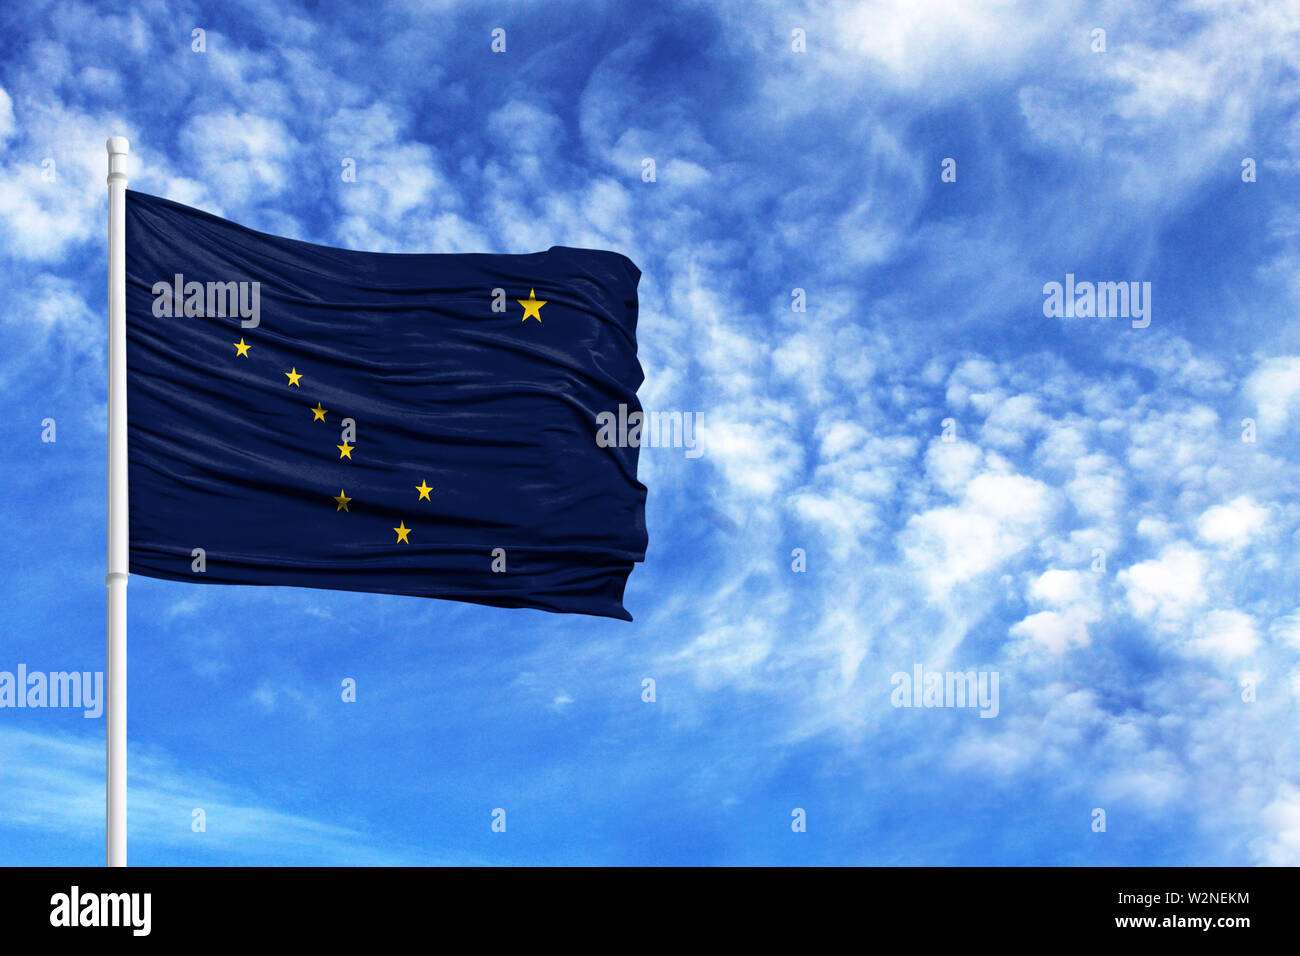 National flag State of Alaska on a flagpole in front of blue sky - Stock Image